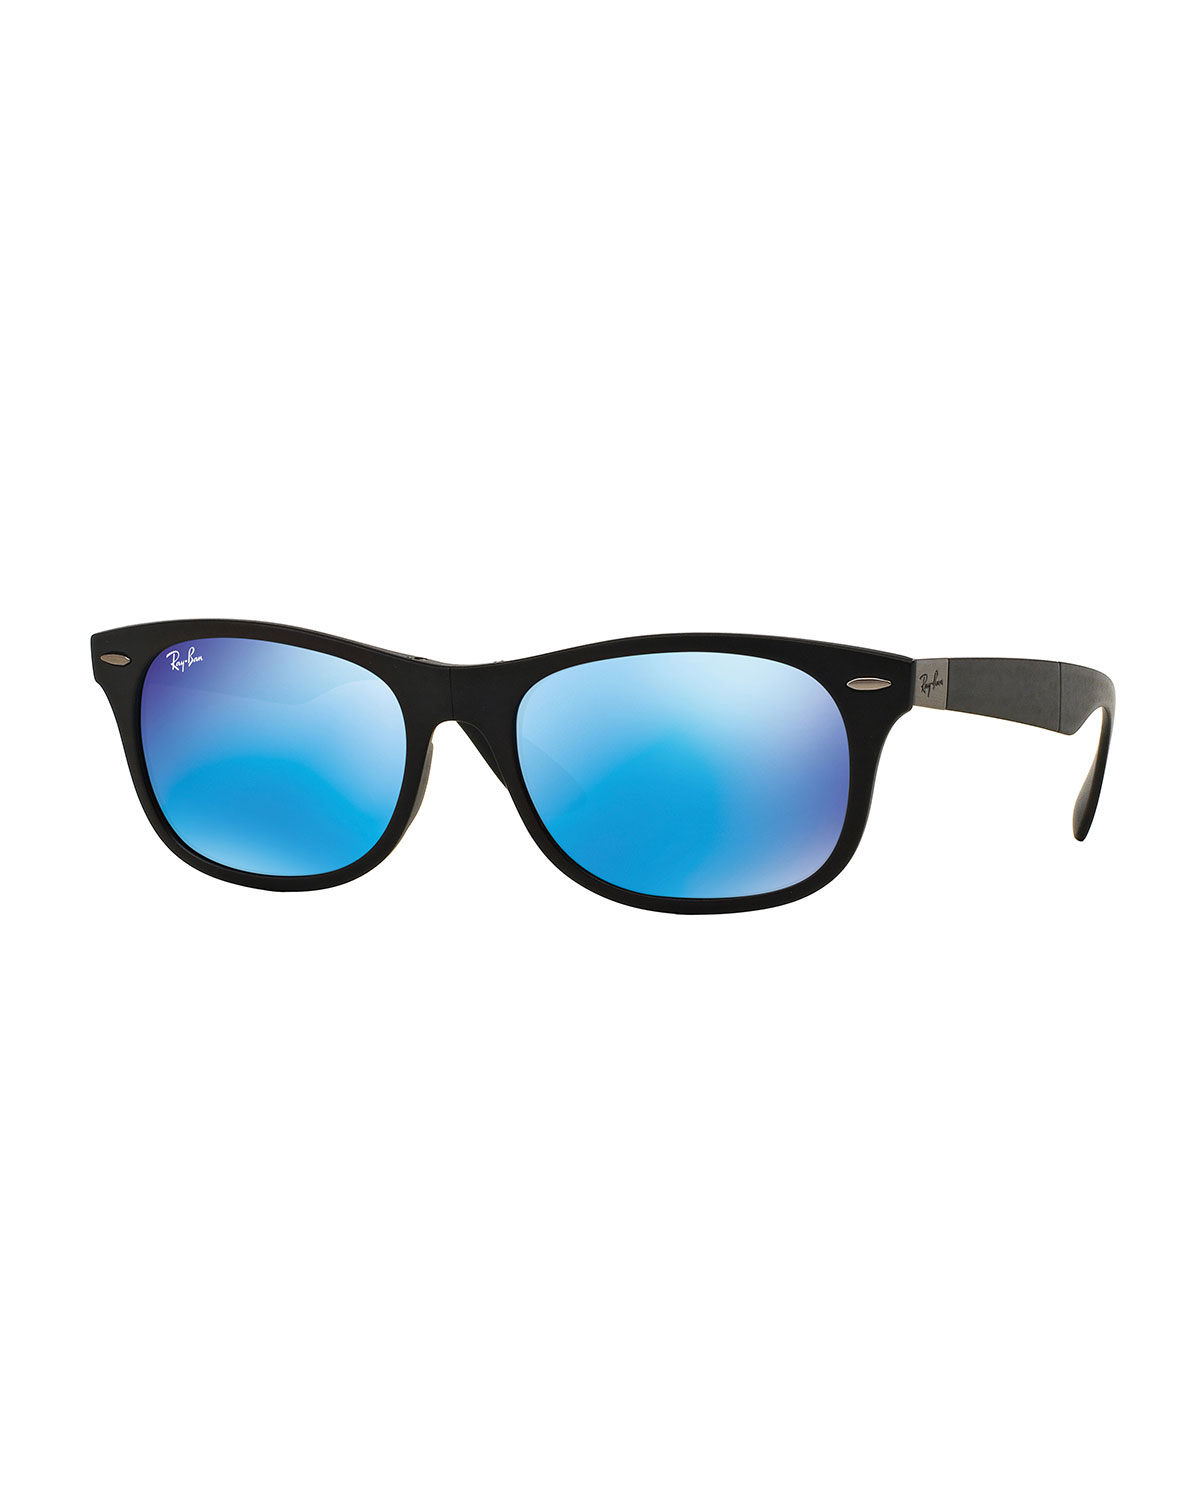 20d5f1cb6002 Ray-Ban Men s Wayfarer Plastic Sunglasses with Mirror Lenses ...